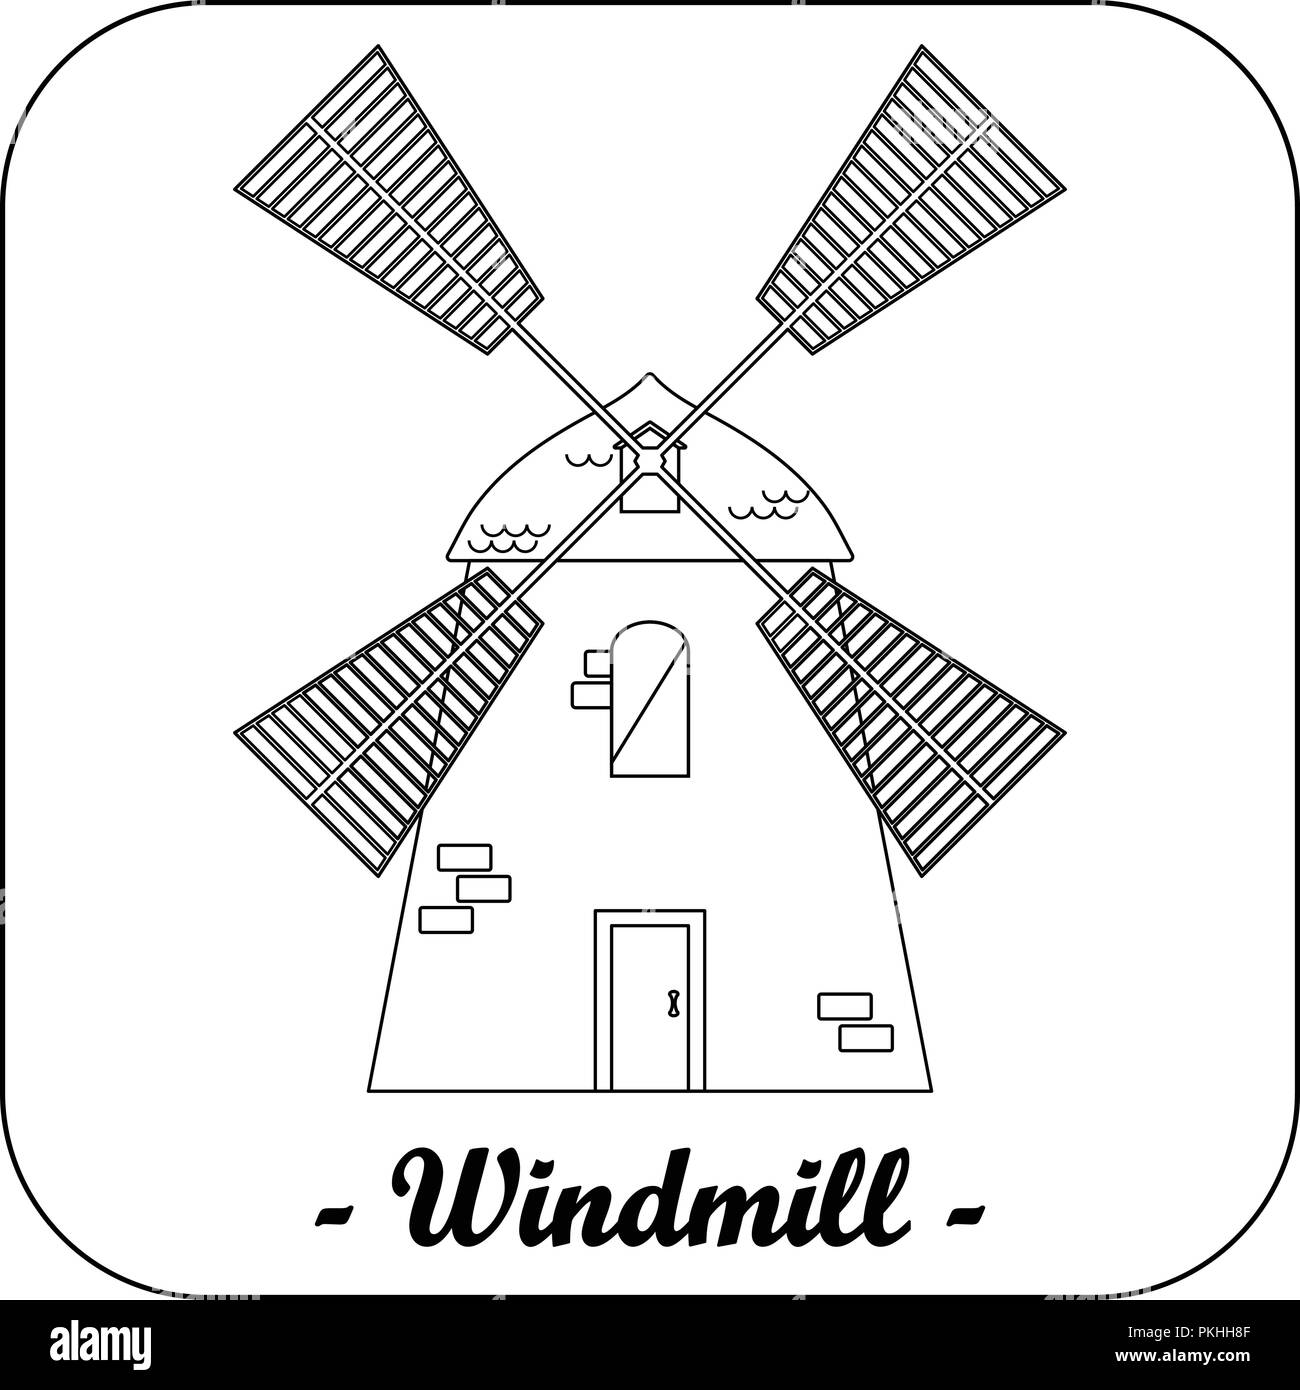 Illustration with a windmill. - Stock Vector